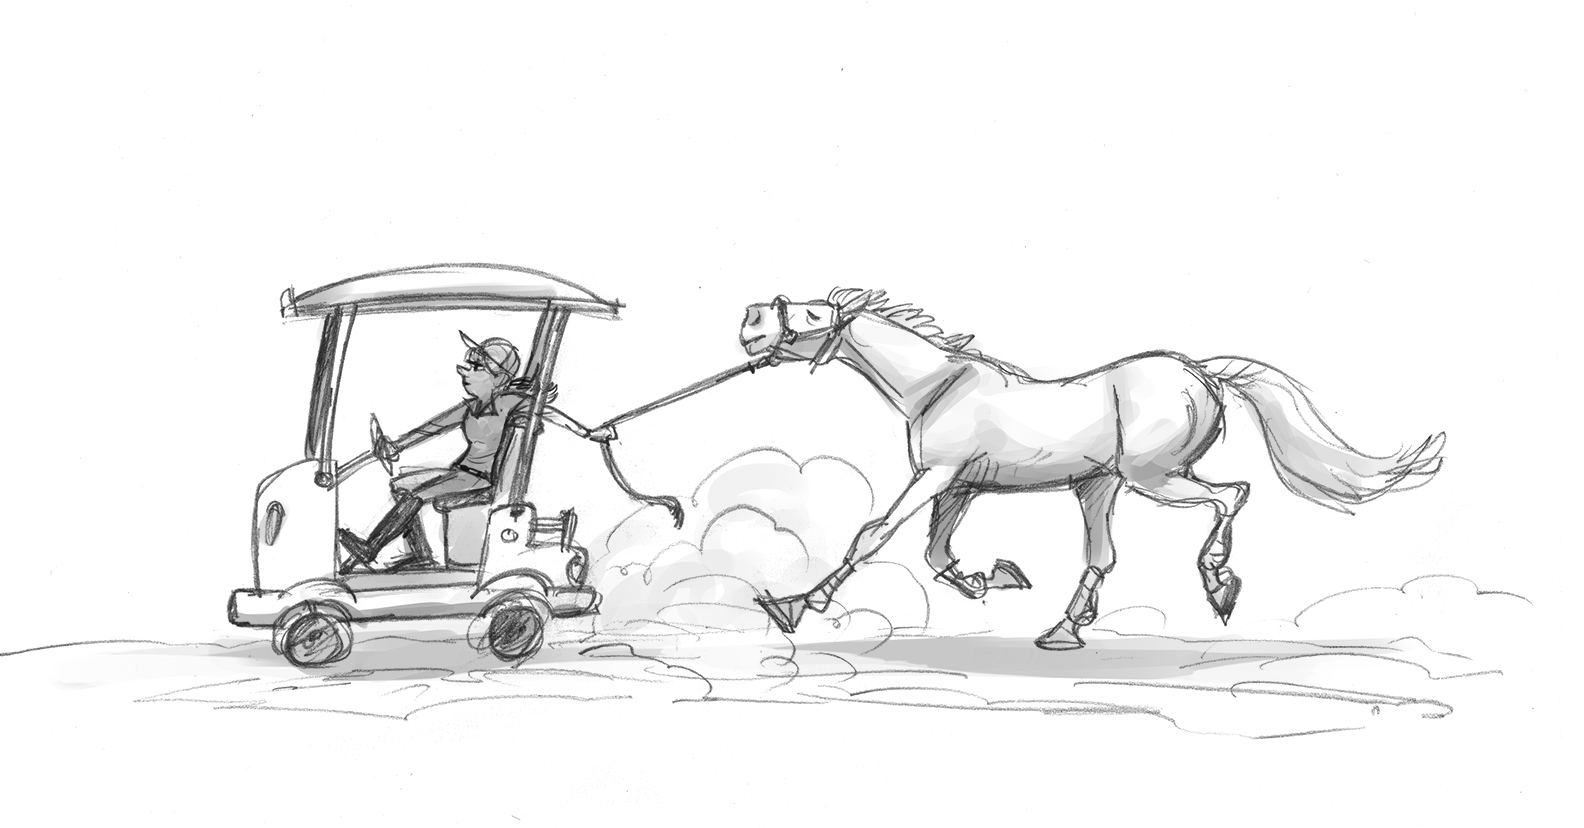 golf cart horse 001 - web.jpg